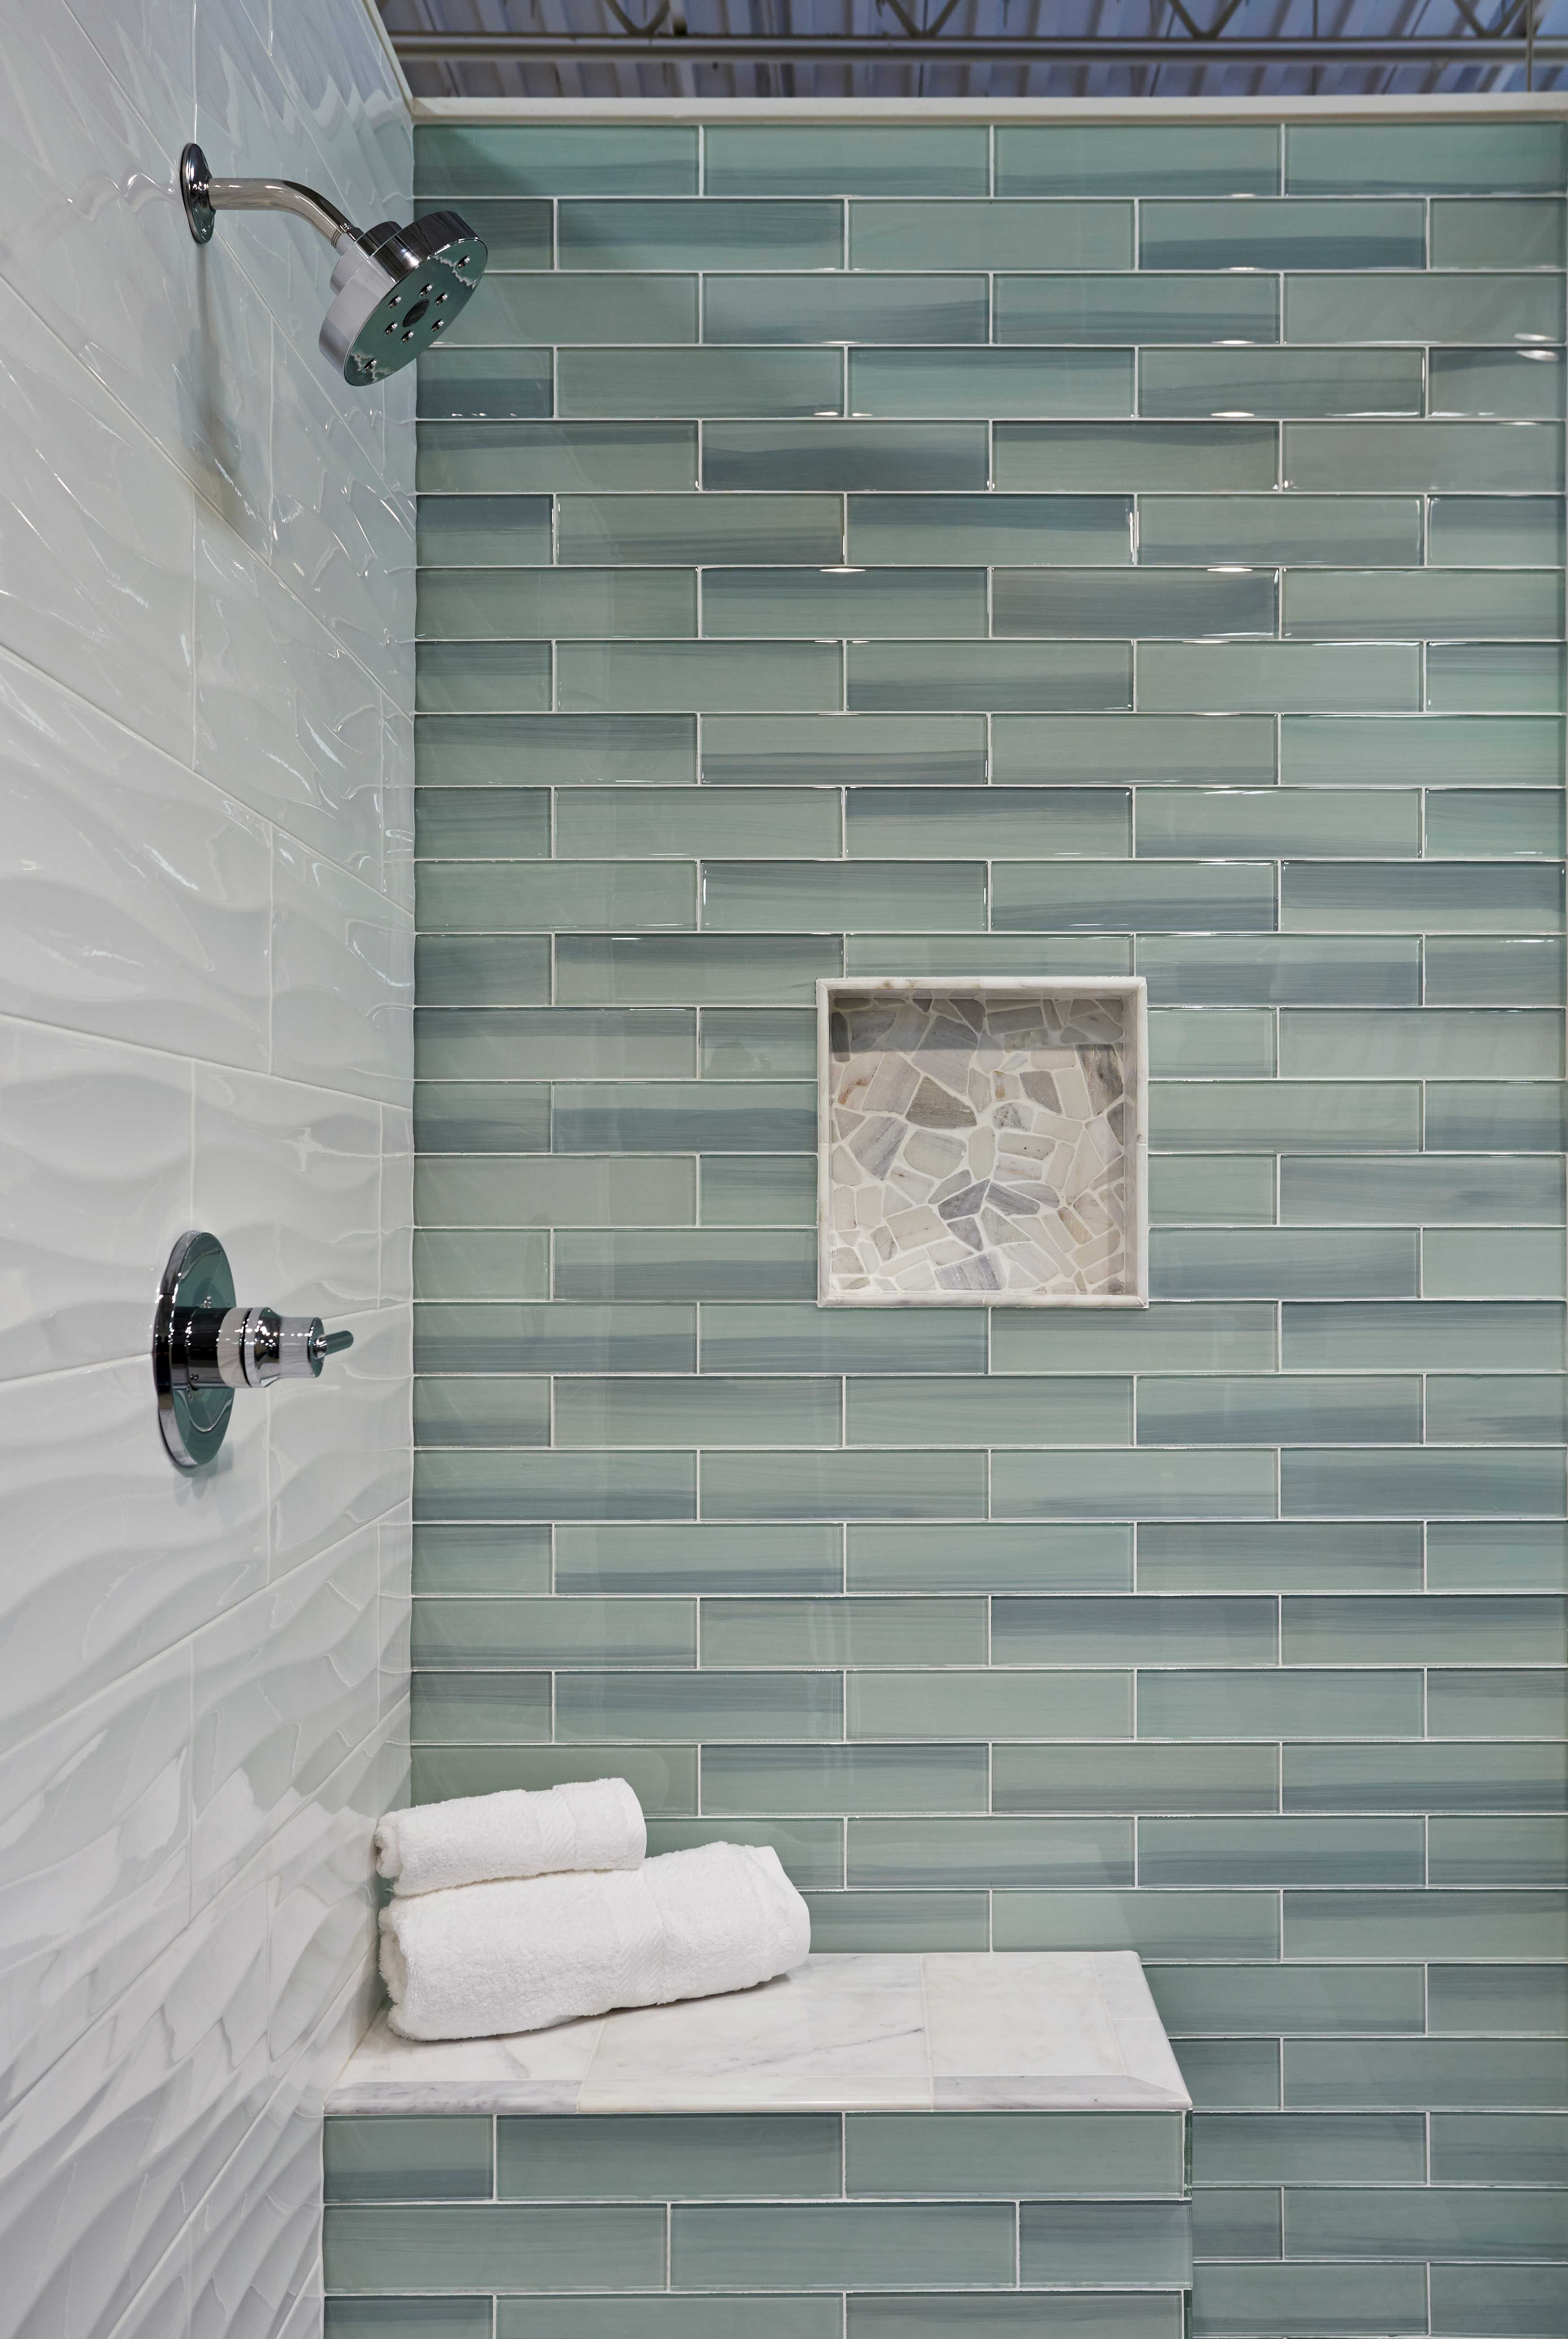 bathroom shower wall tile new haven glass subway tile. Black Bedroom Furniture Sets. Home Design Ideas